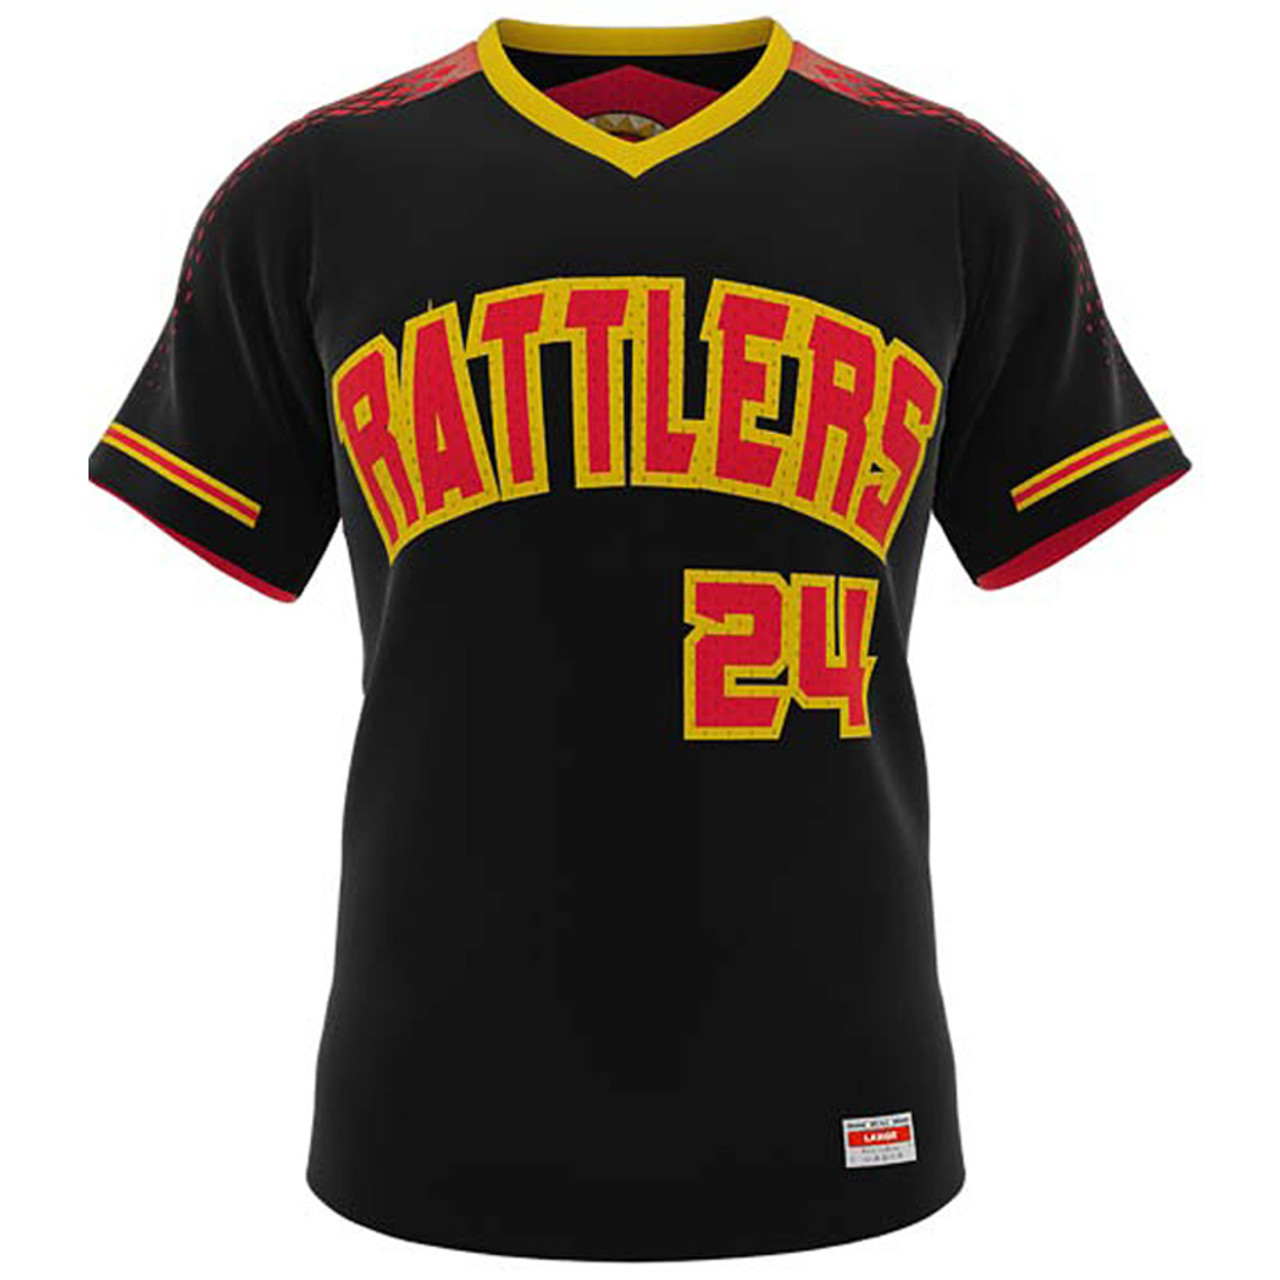 the best attitude 89209 5c856 AthElite Mens Dinger Double Play Reversible Baseball Birdeye Jersey